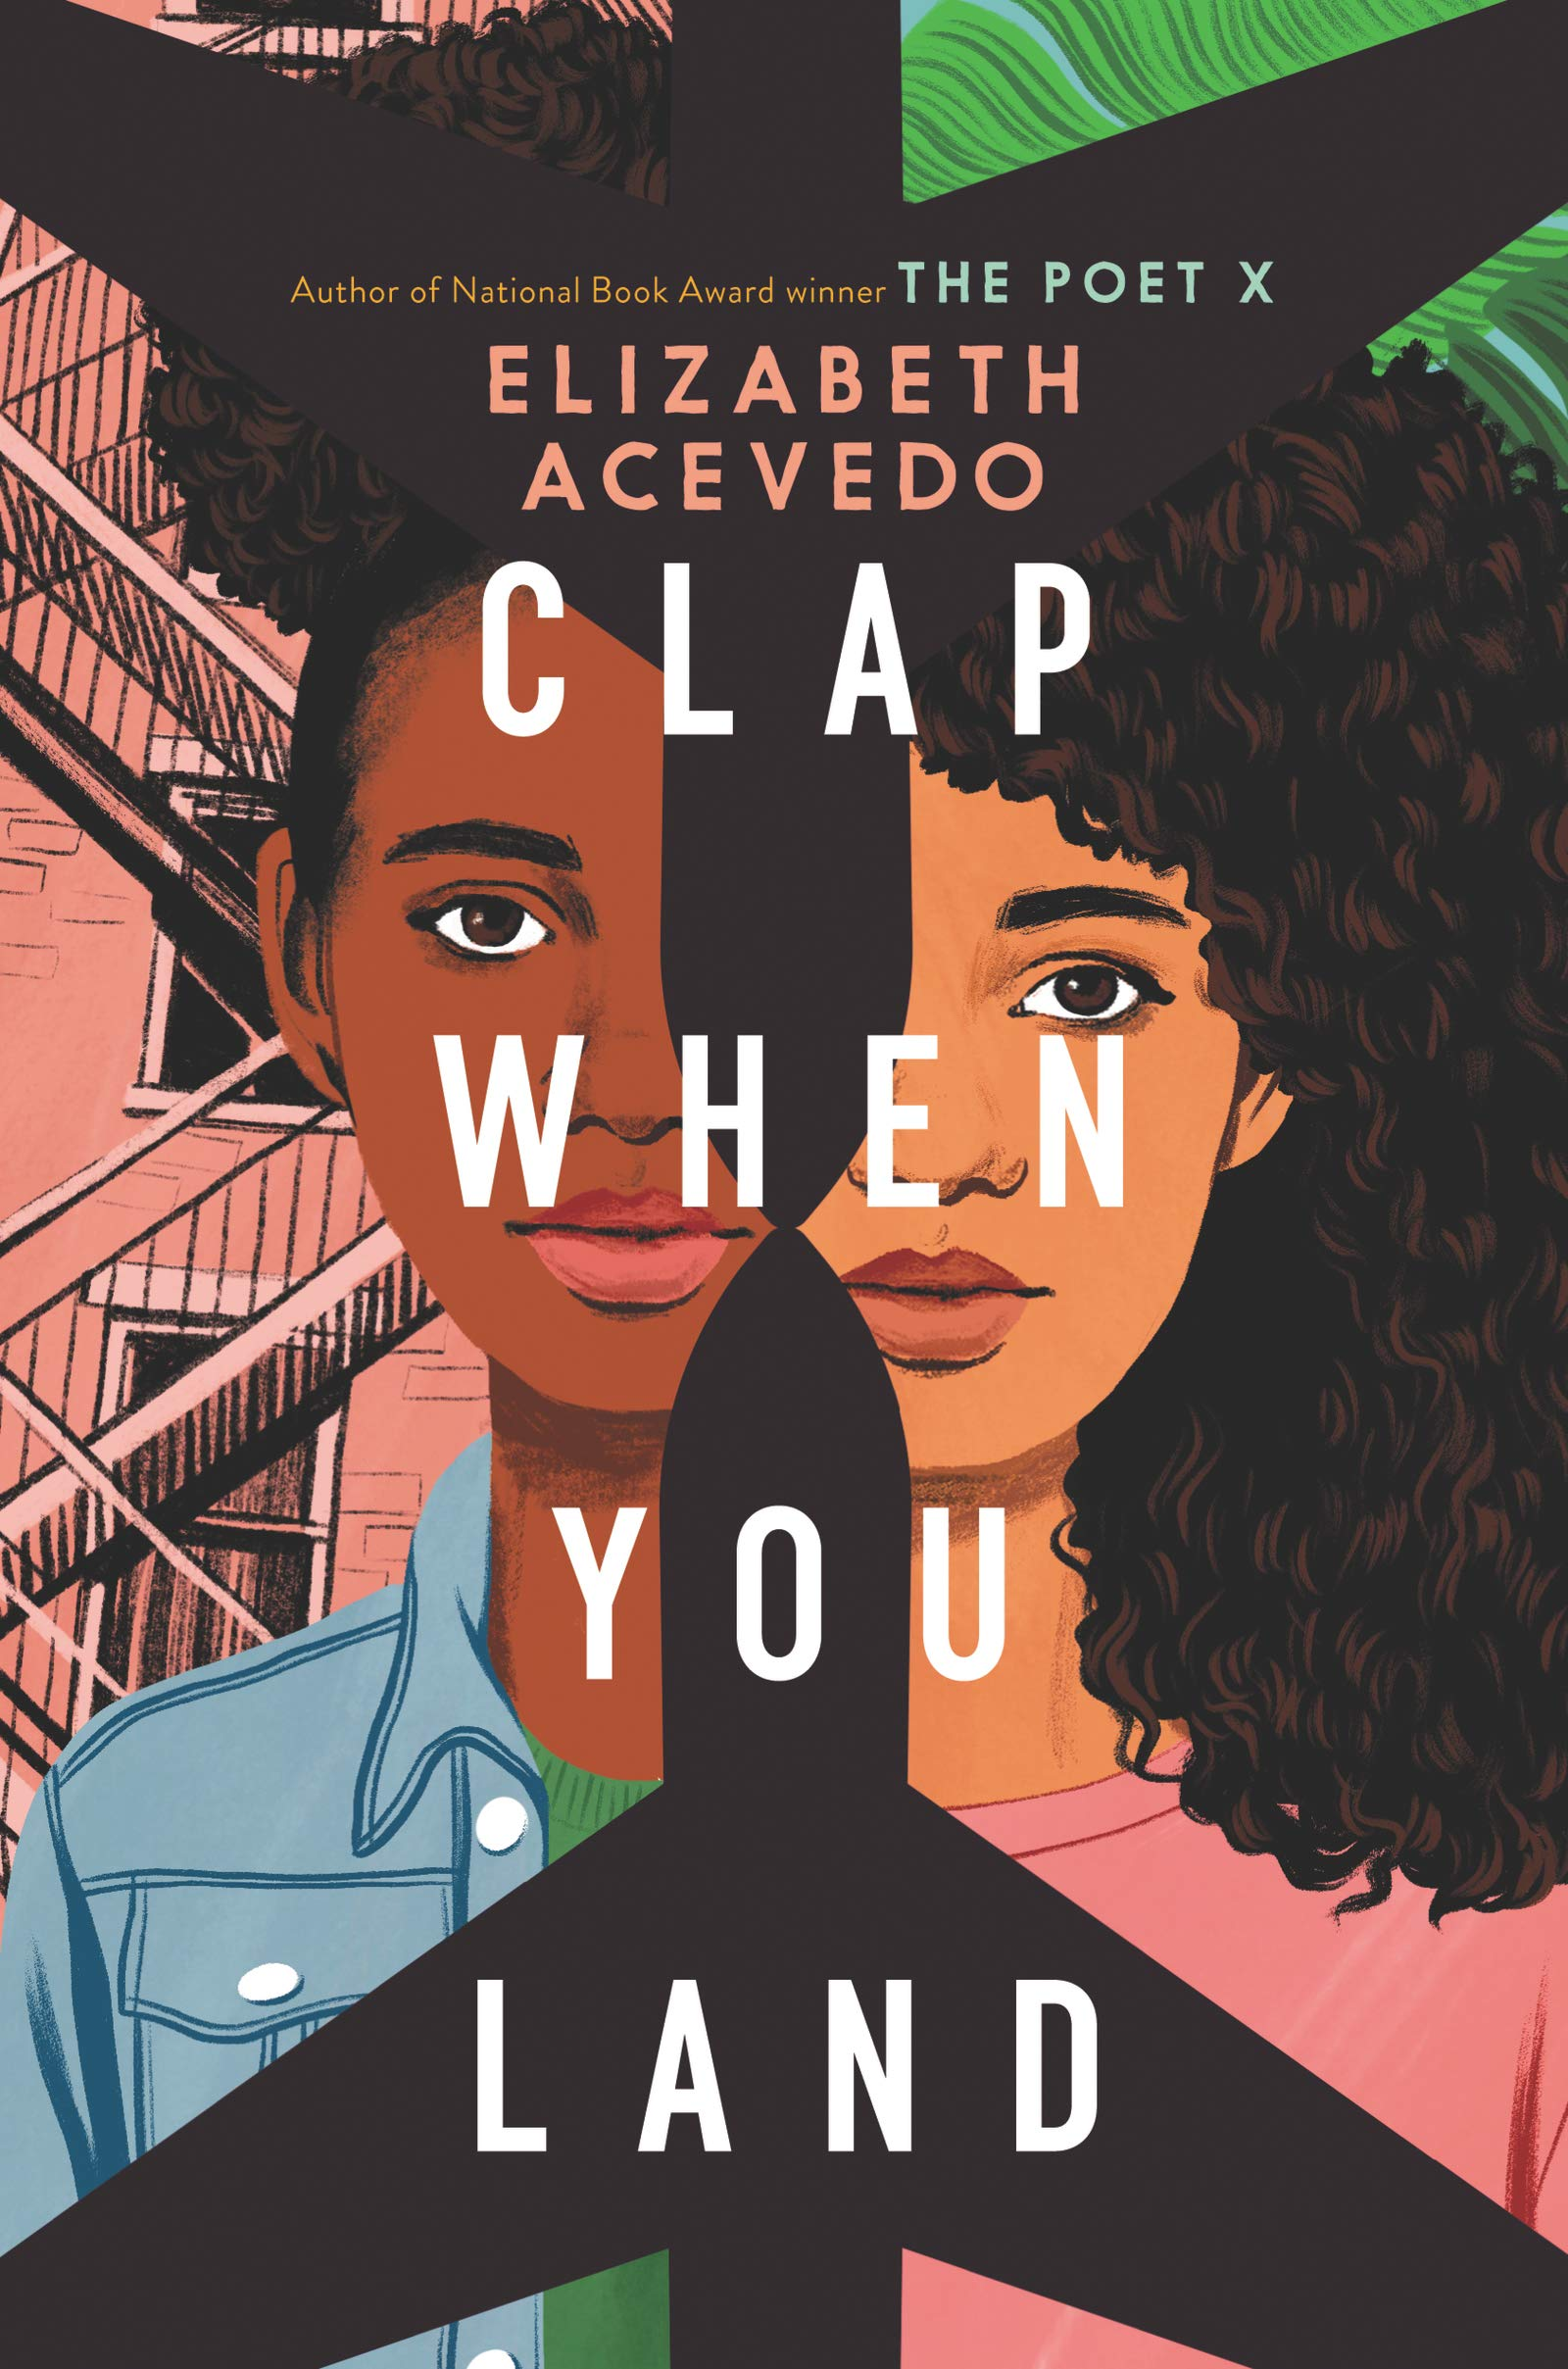 Amazon.com: Clap When You Land (9780062882769): Acevedo, Elizabeth: Books